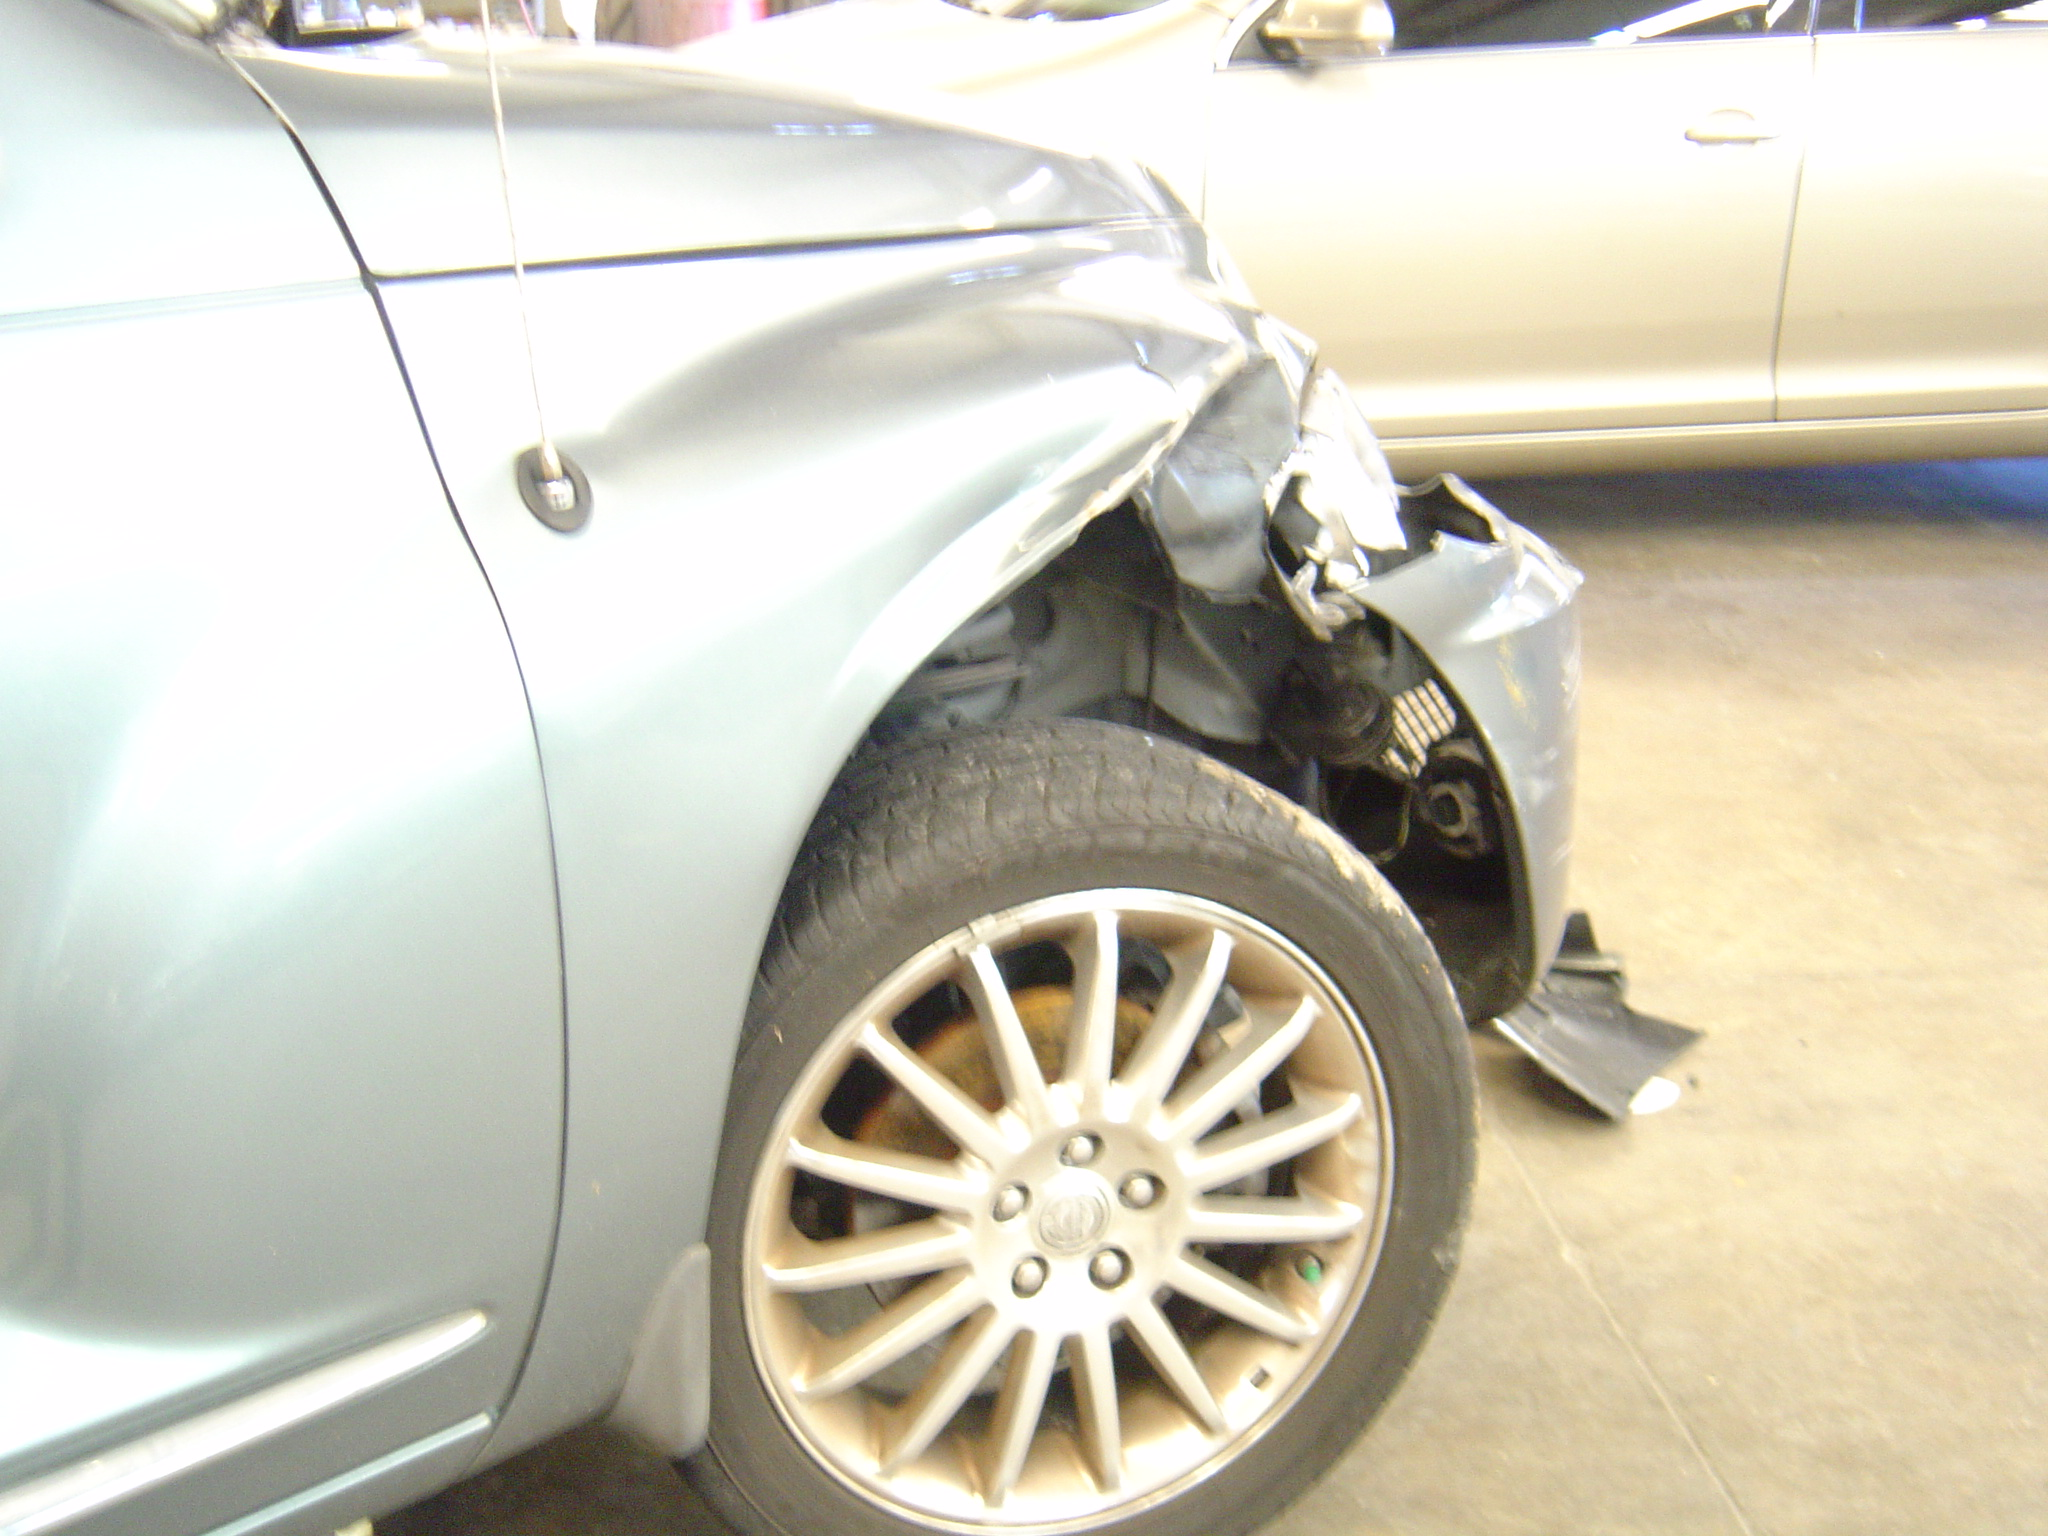 Guy's Automotive's Body Shop Tampa offers Dodge auto body collision repair work in Tampa, Florida